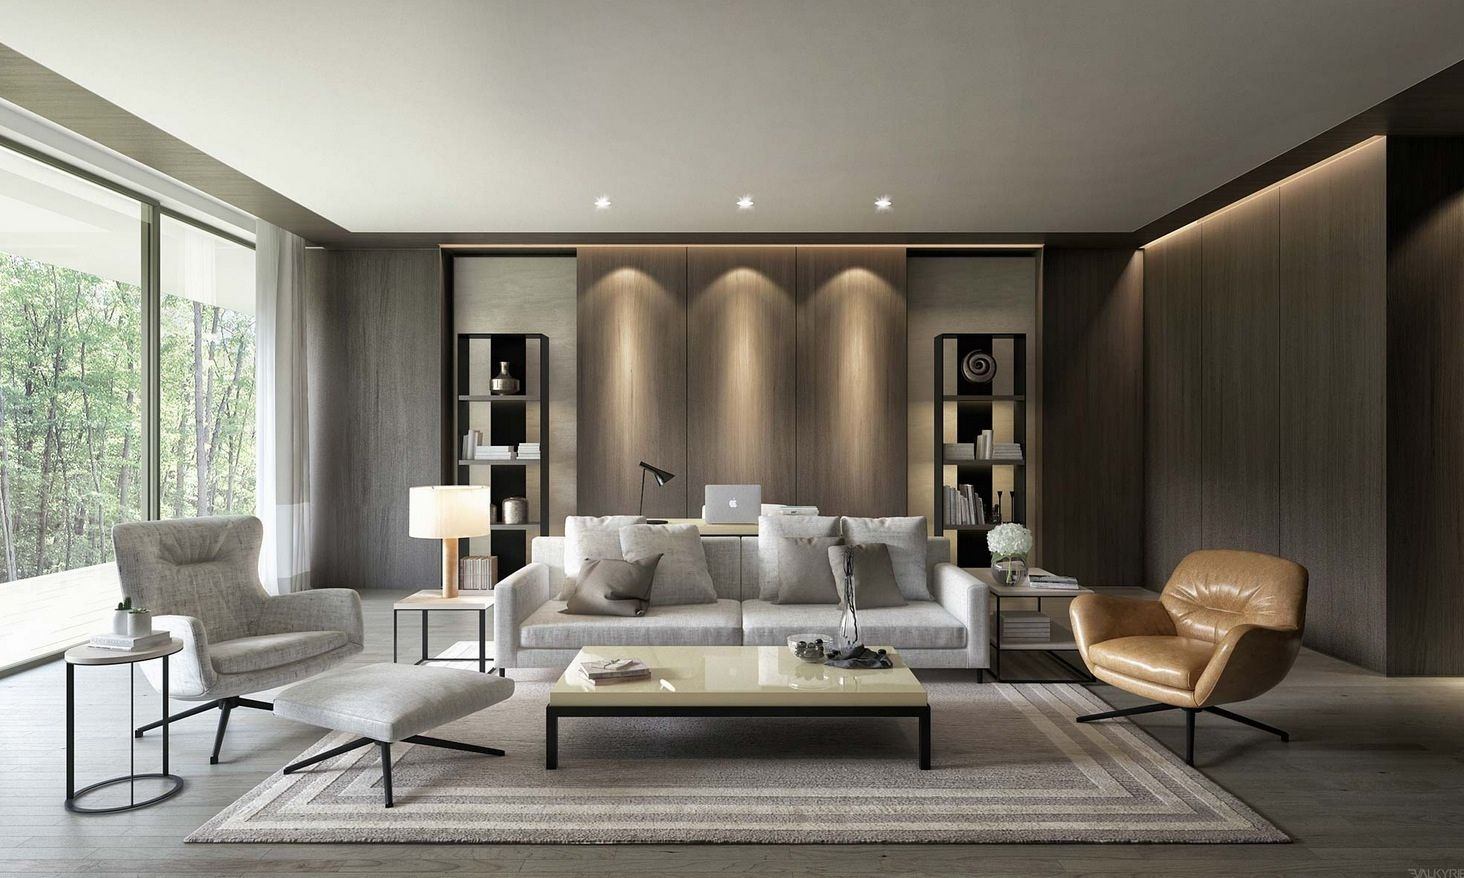 innendesign ideen wohnzimmer  Luxury living room, Interior design